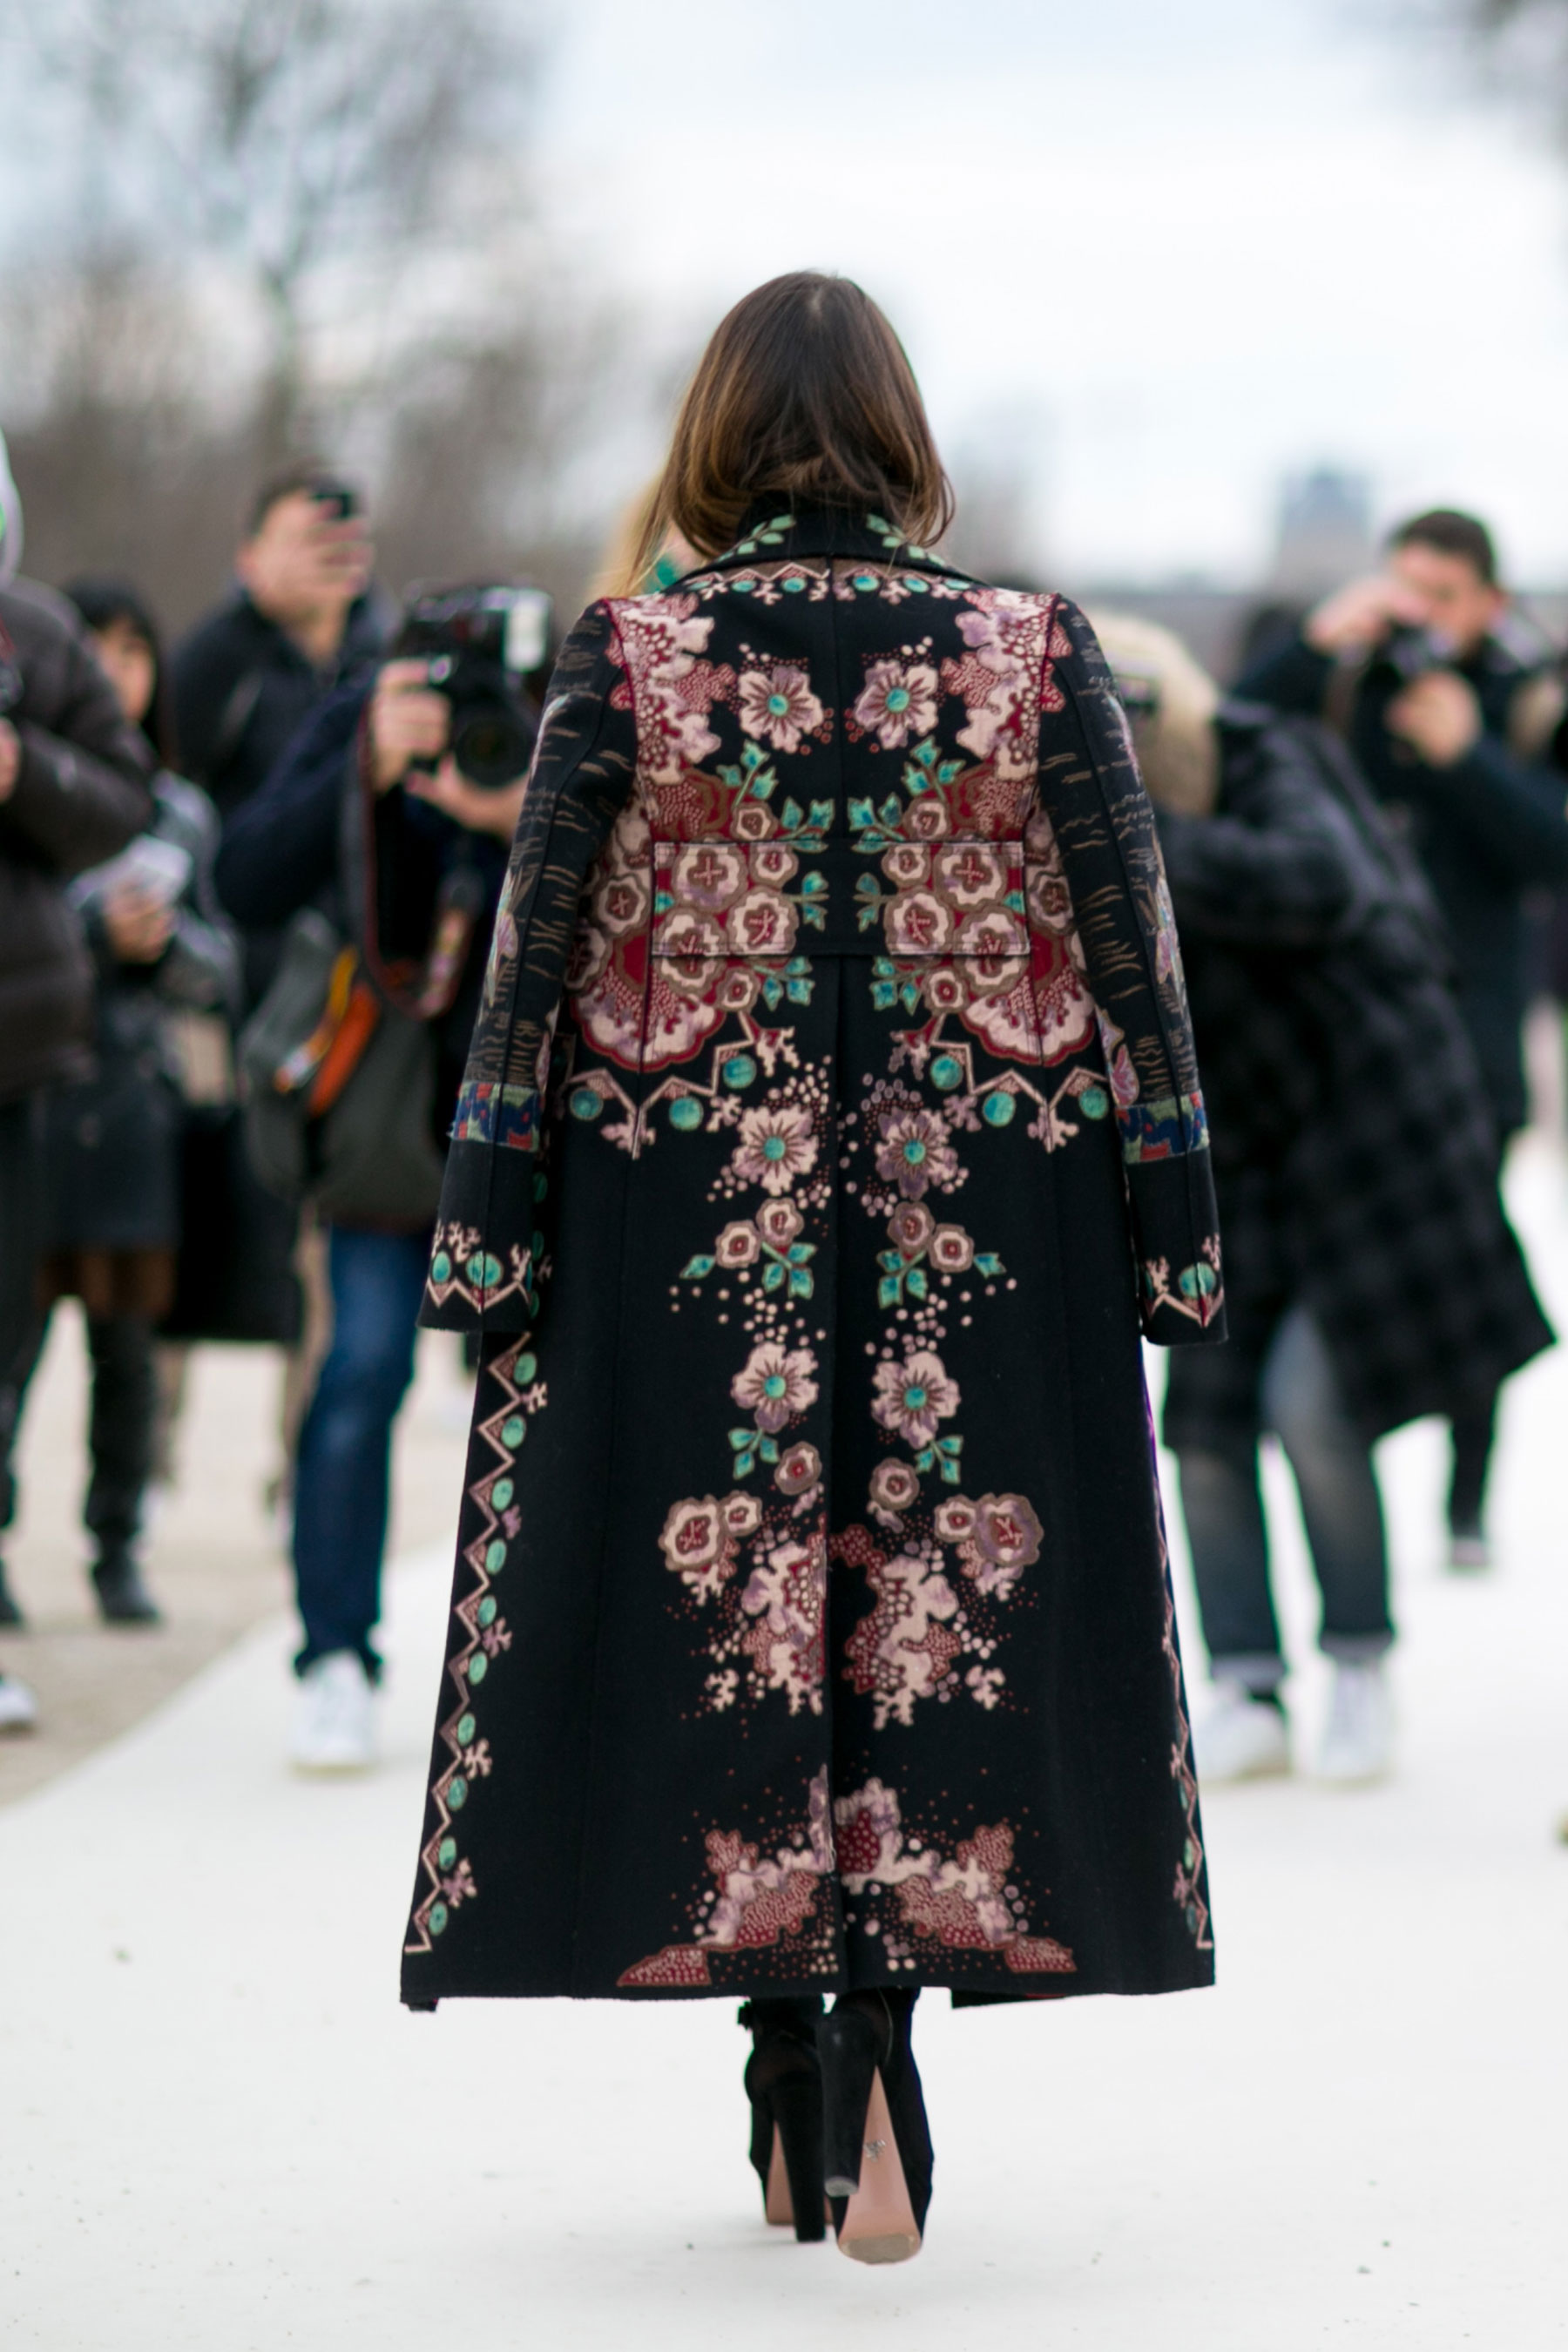 How to Dress to Impress When Traveling the World - paris-str-rf16-8490 - Posh Brazilian - statement coats - travel outfit ideas - beautiful coats - pfw street style 2016